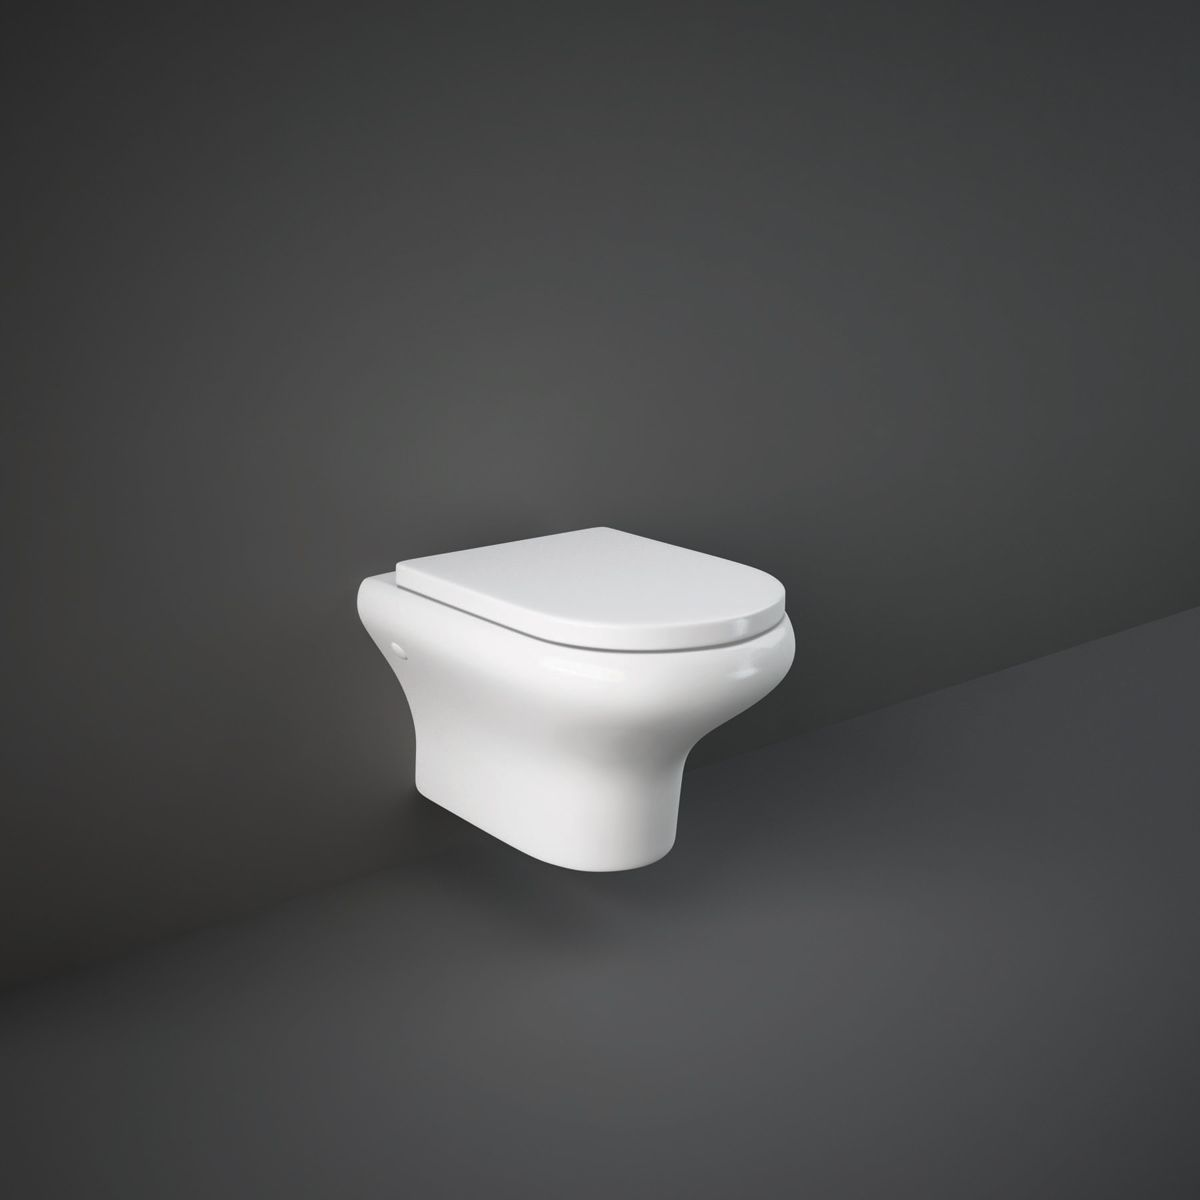 RAK Compact Wall Hung Toilet with Soft Close Seat